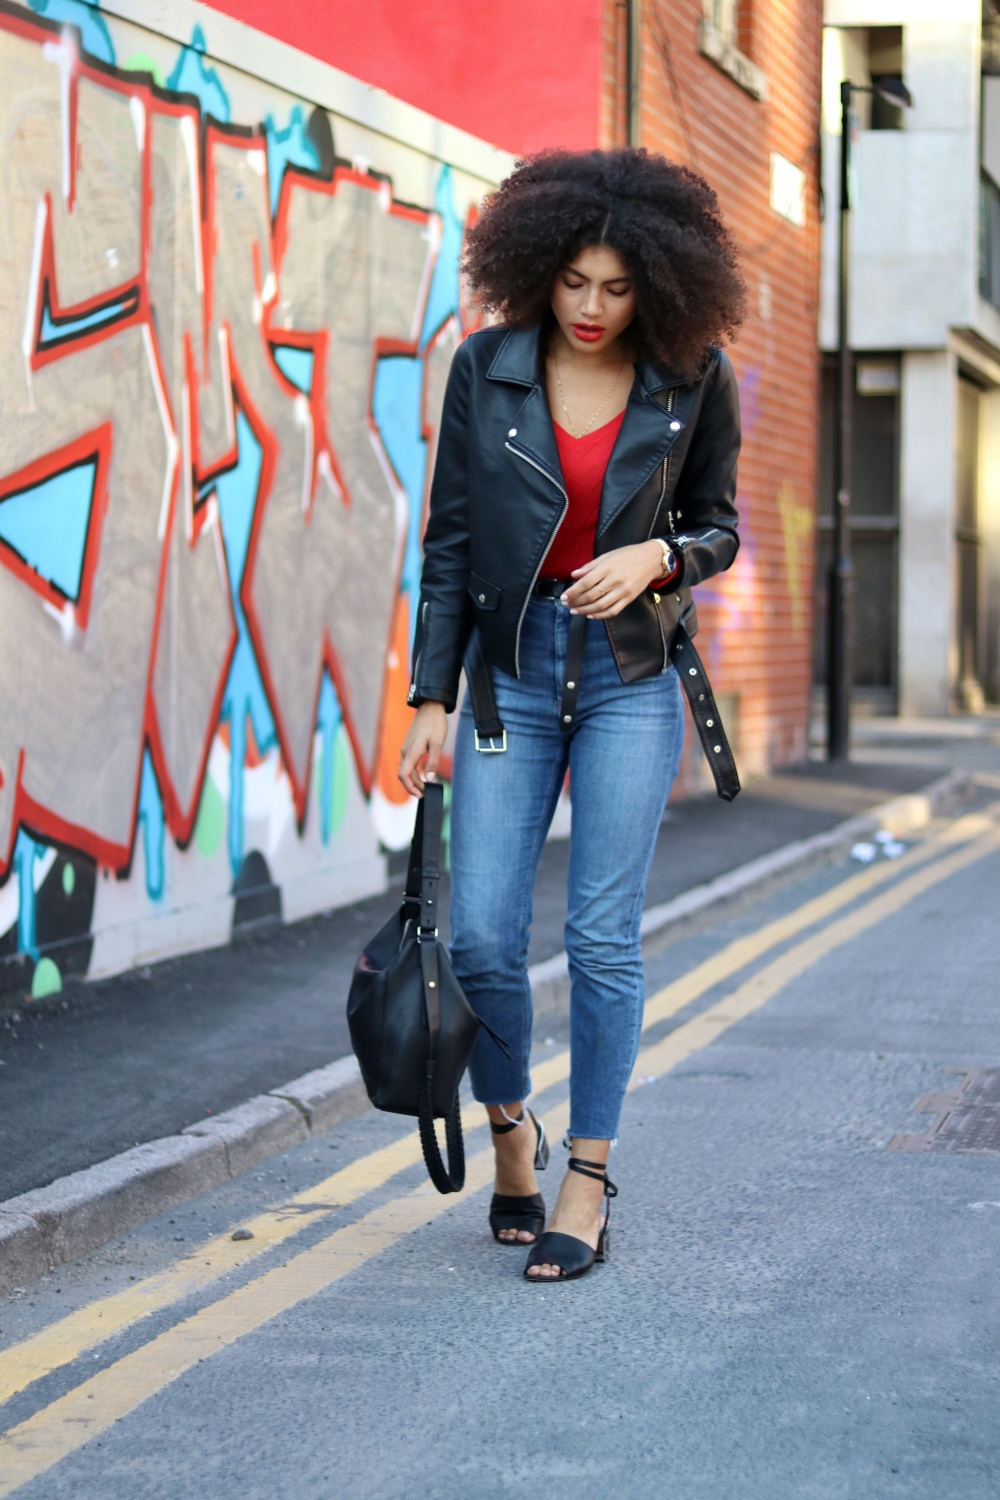 Topshop Biker Jacket and Wide V Neck Ribbed Top in Red